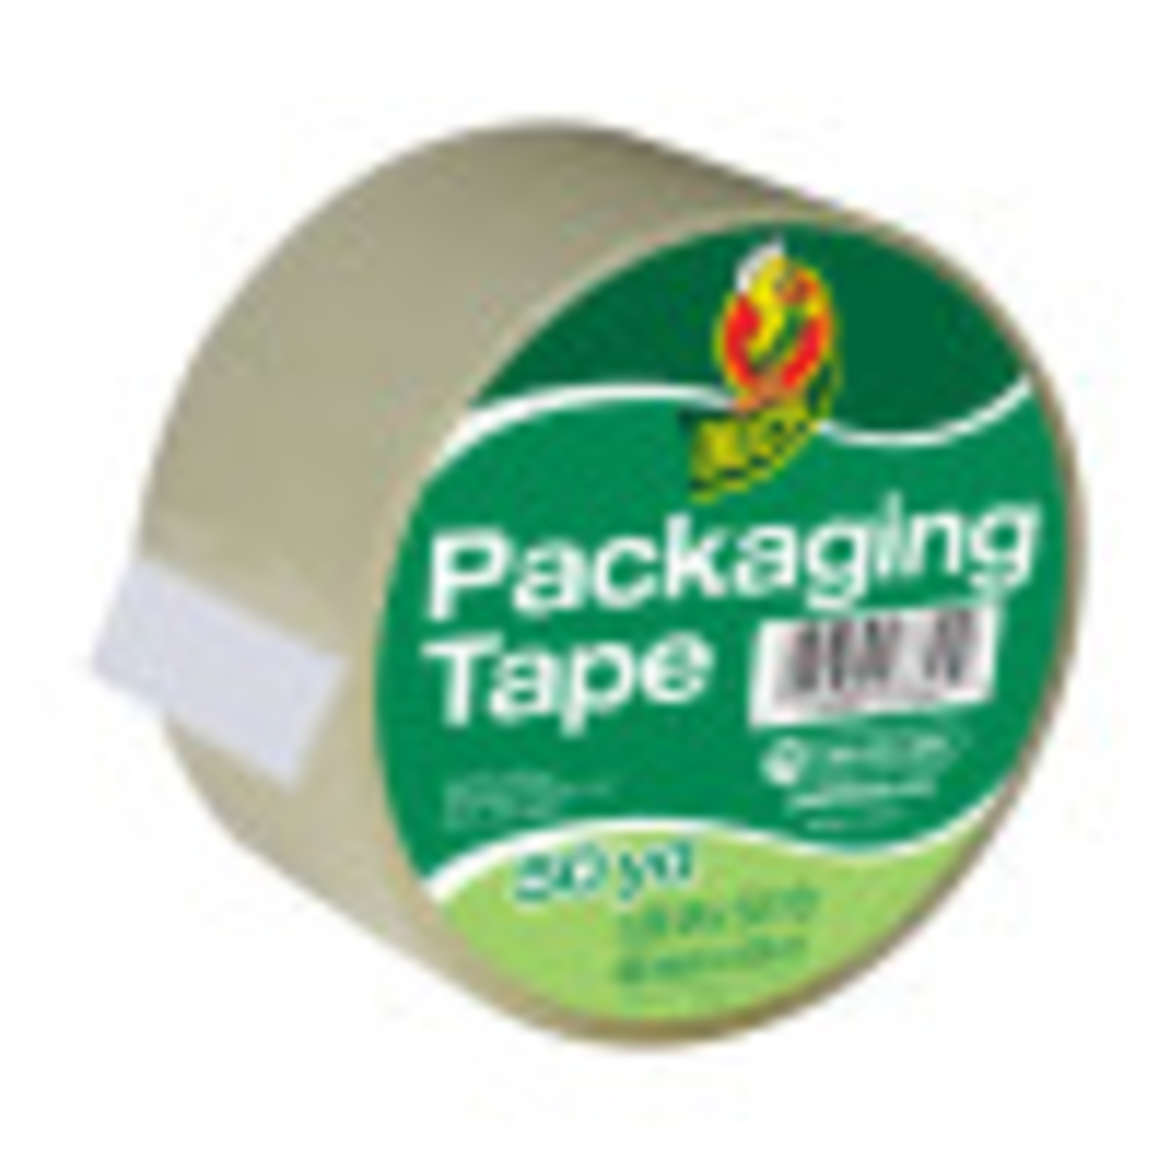 Duck® Brand Standard Packaging Tape - Clear, 1.88 in. x 50 yd. Image